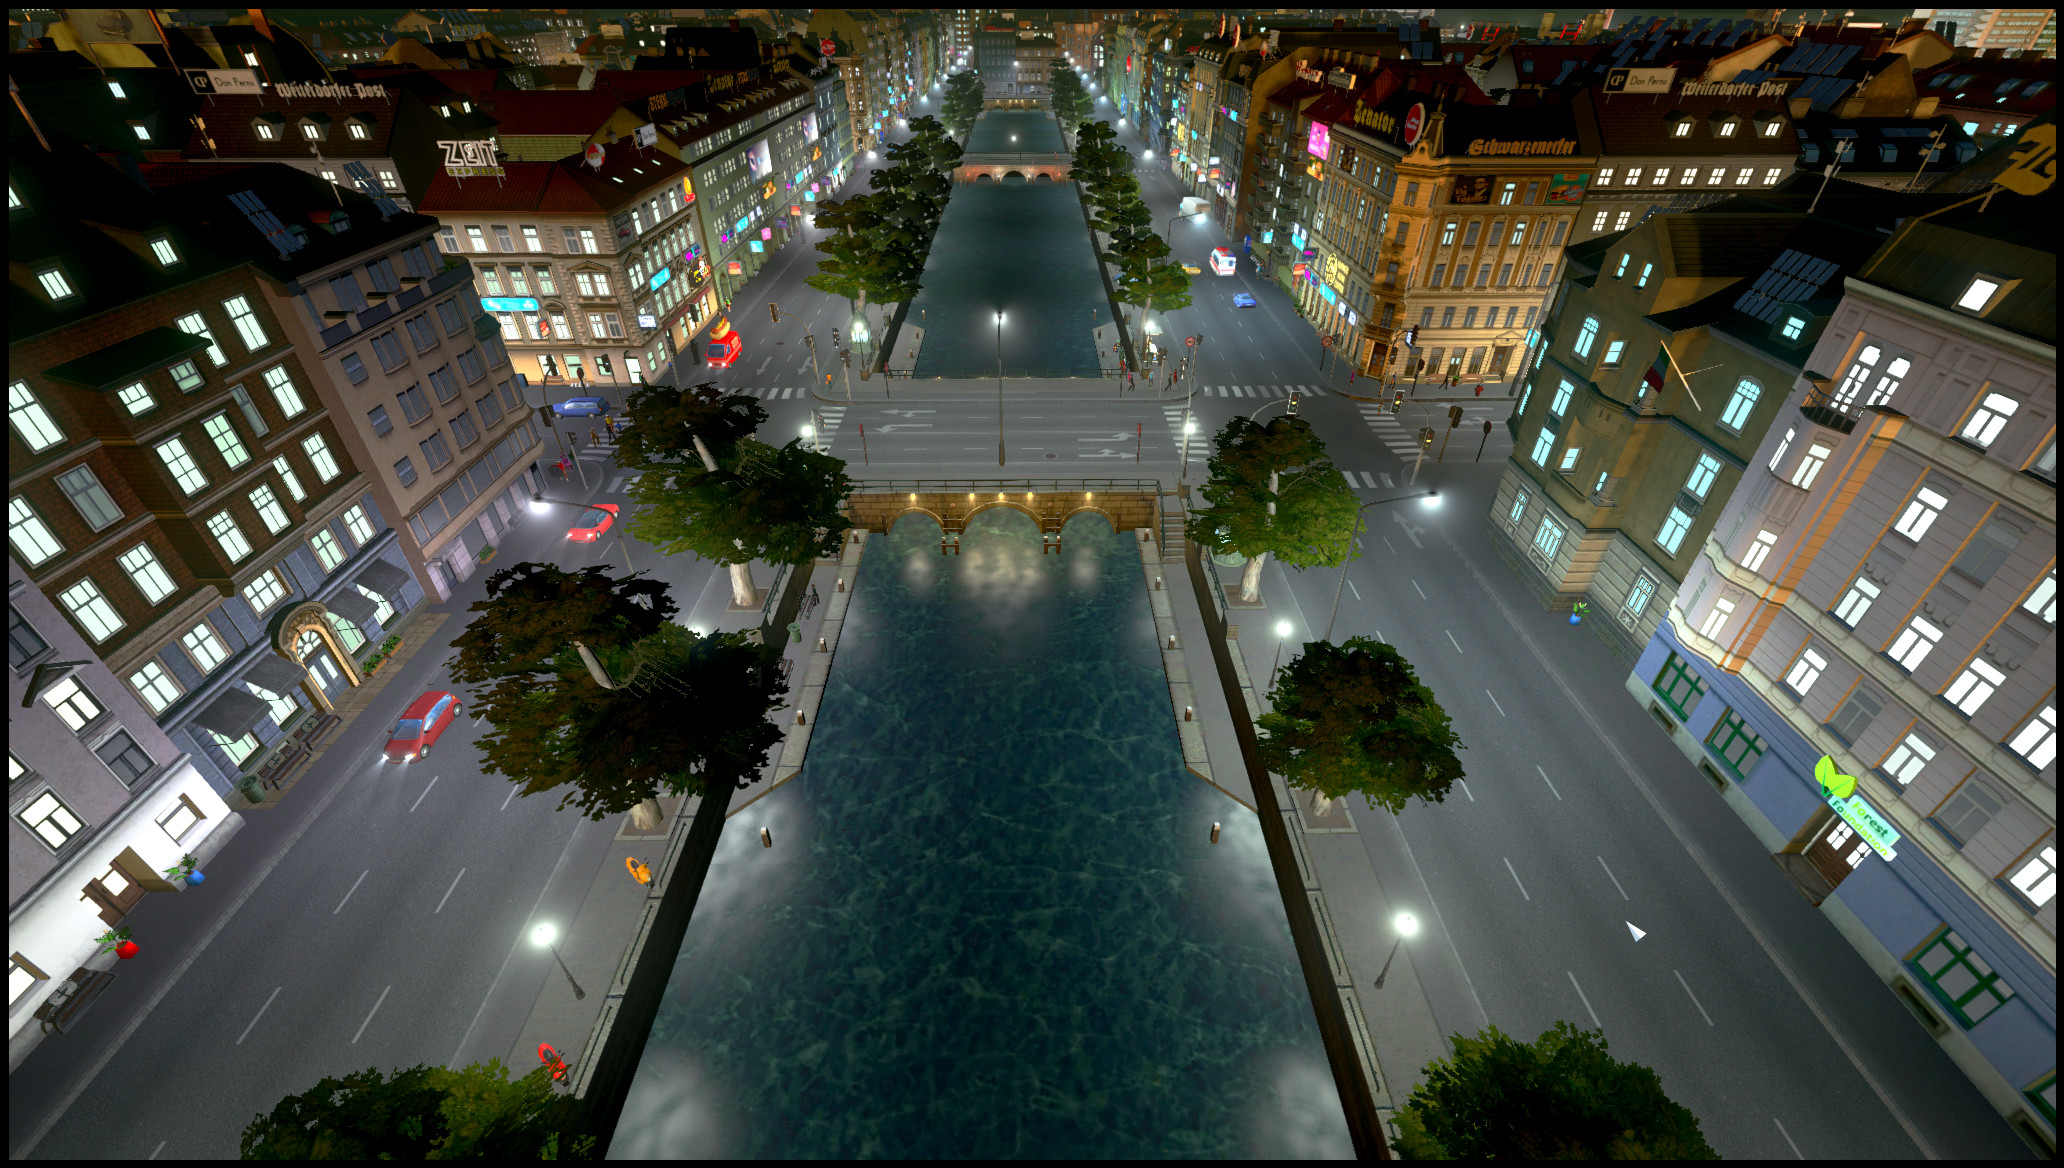 European-style canals modded into Cities: Skylines | PC Gamer